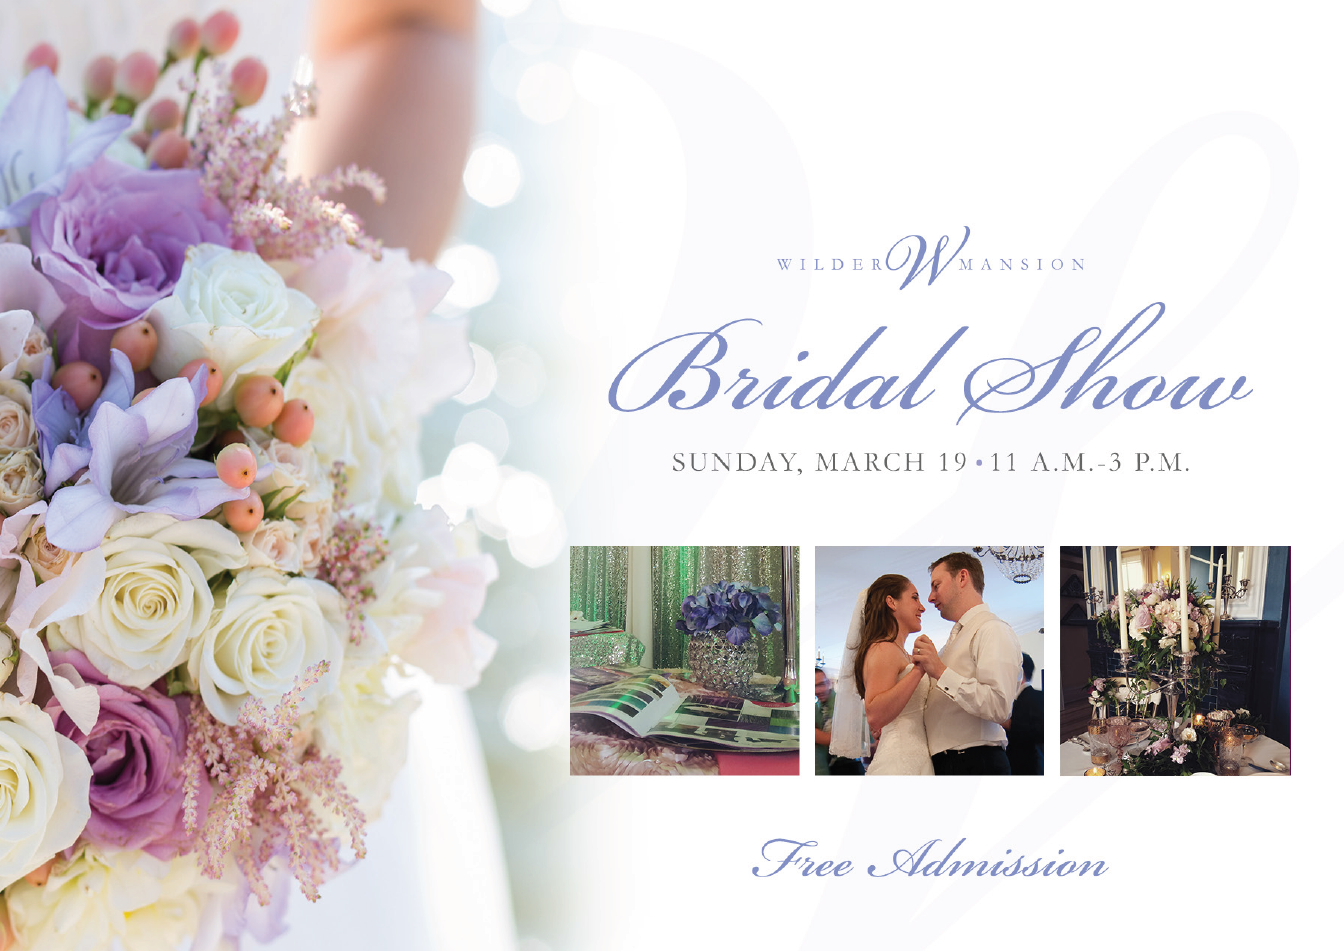 Bridal shows in illinois - Wilder Mansion Bridal Show 2017